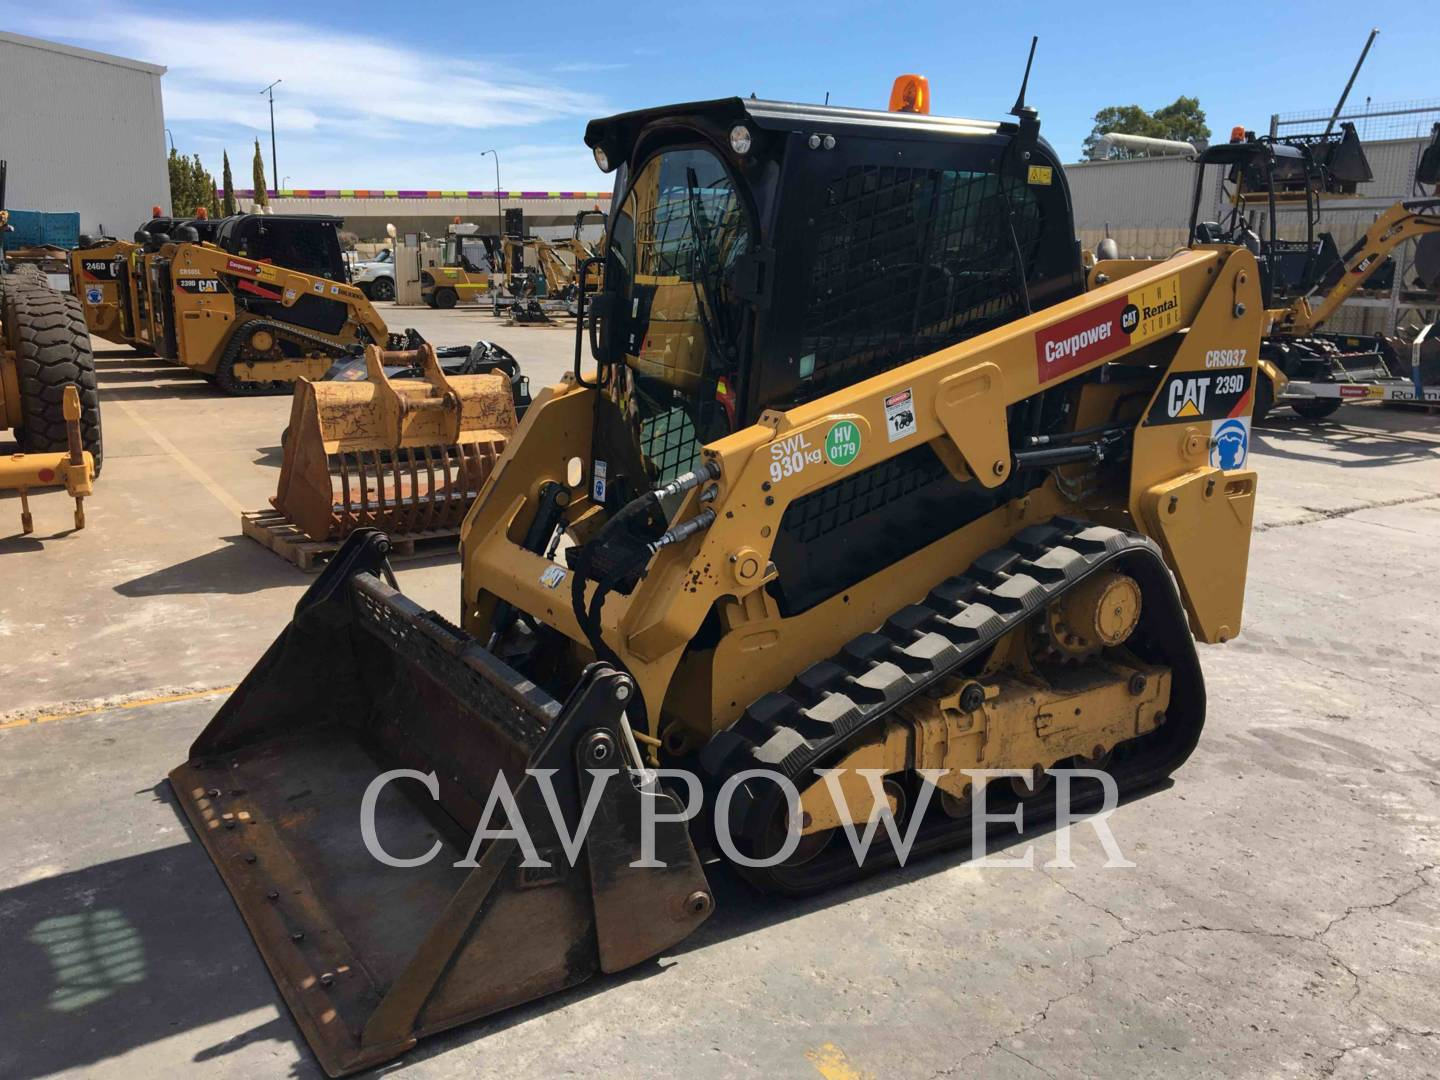 CATERPILLAR 239DLRC Page | Cavpower